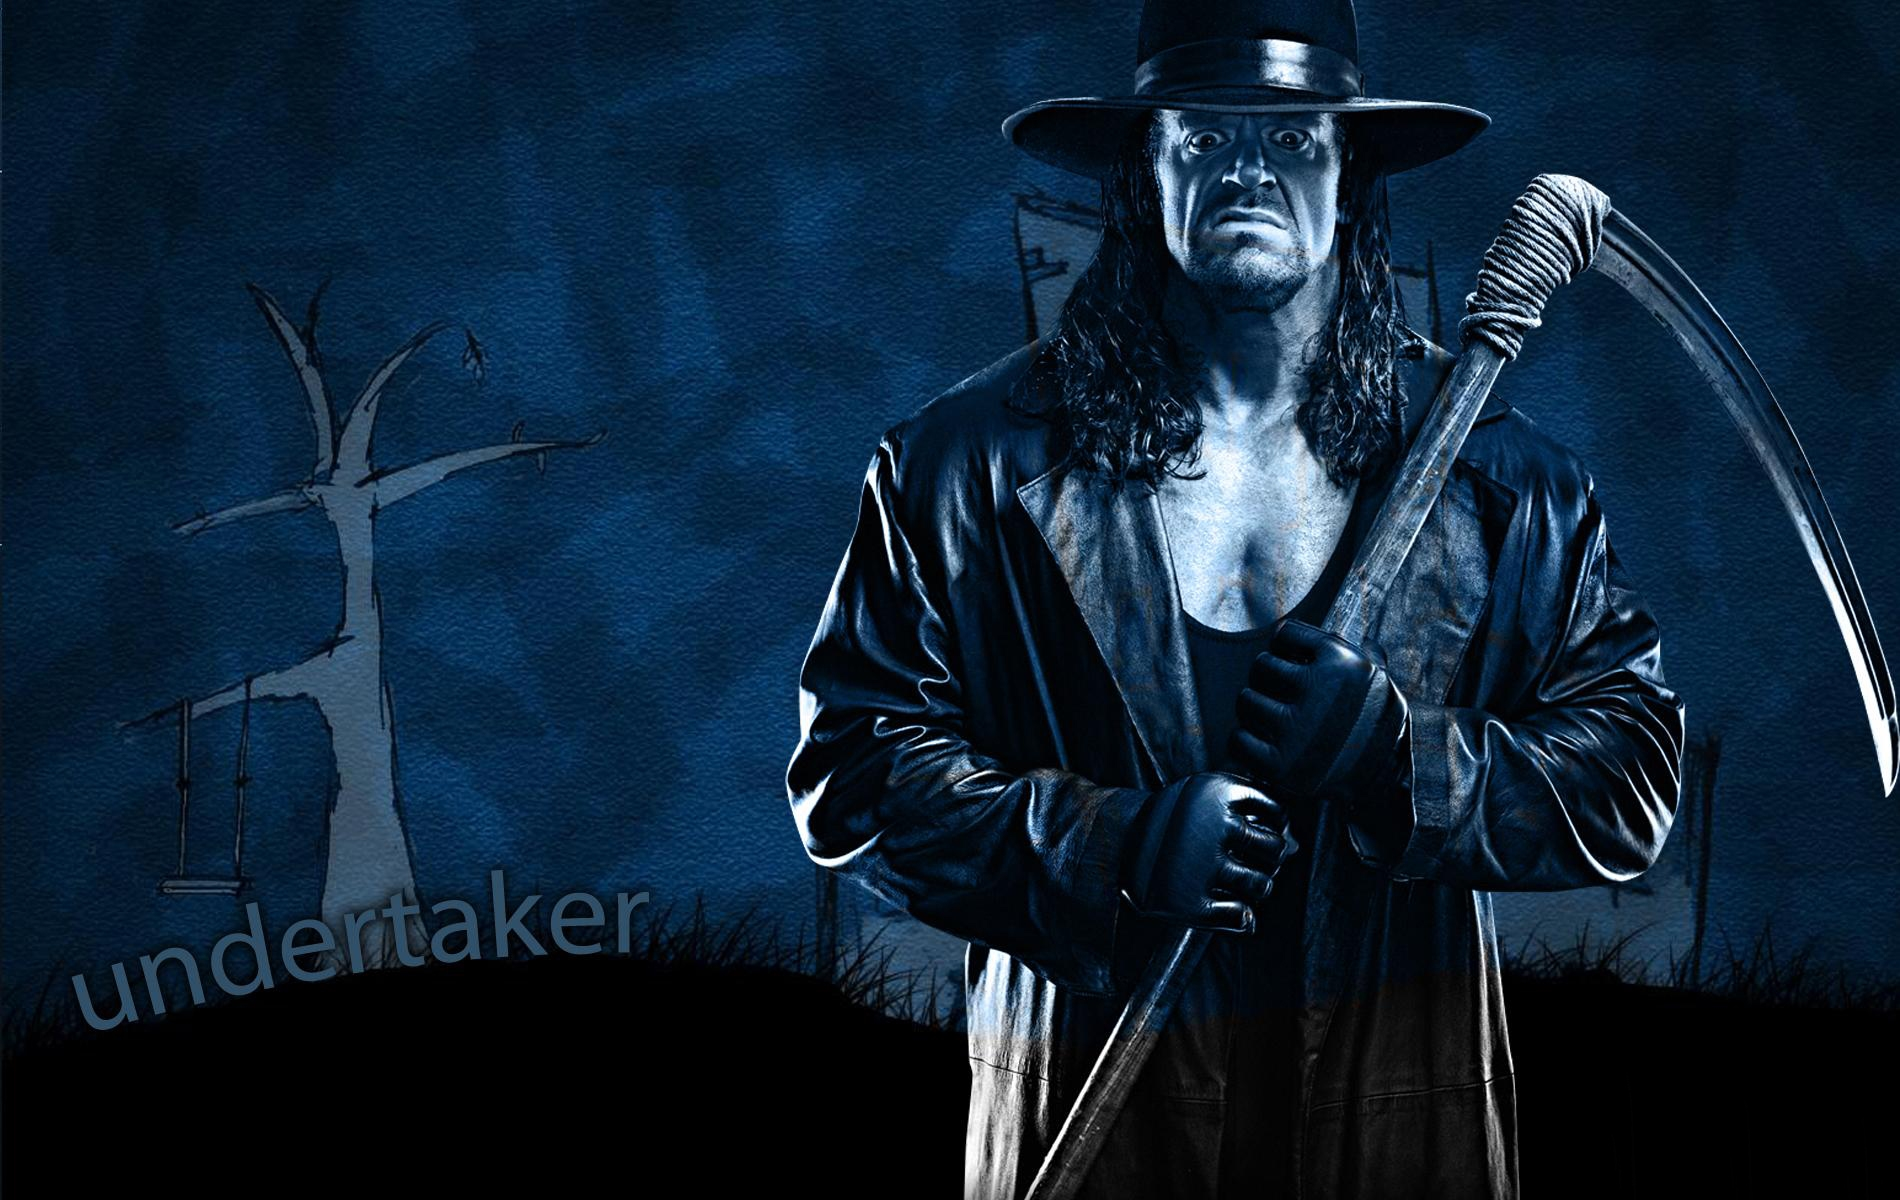 Undertaker Full HD Wallpaper